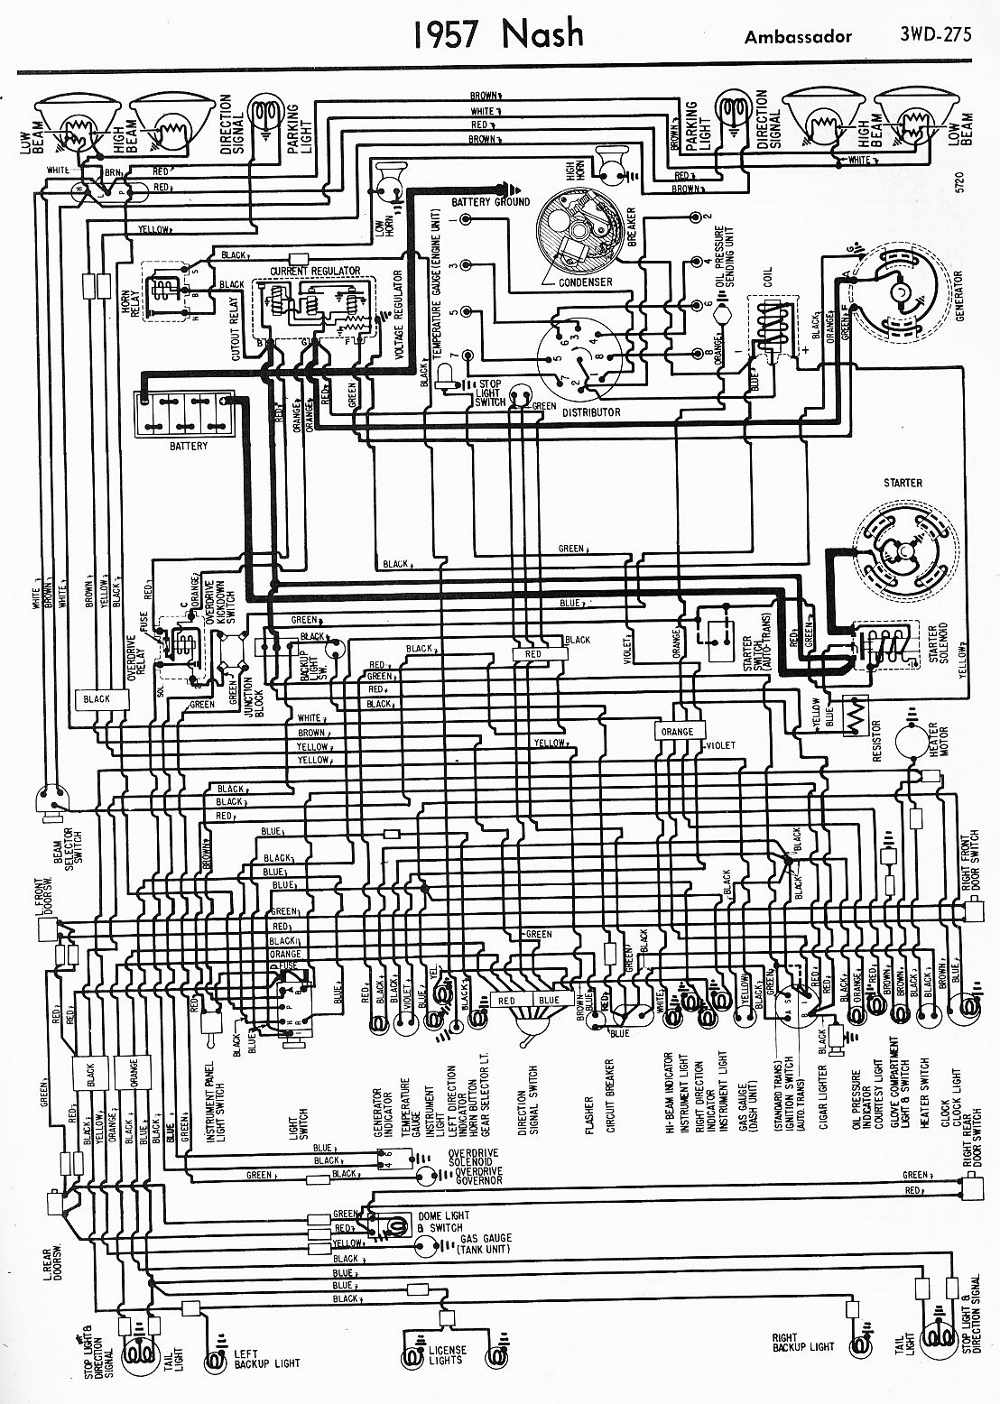 velie wiring diagram wiring diagram for you schematic diagram velie wiring  diagram